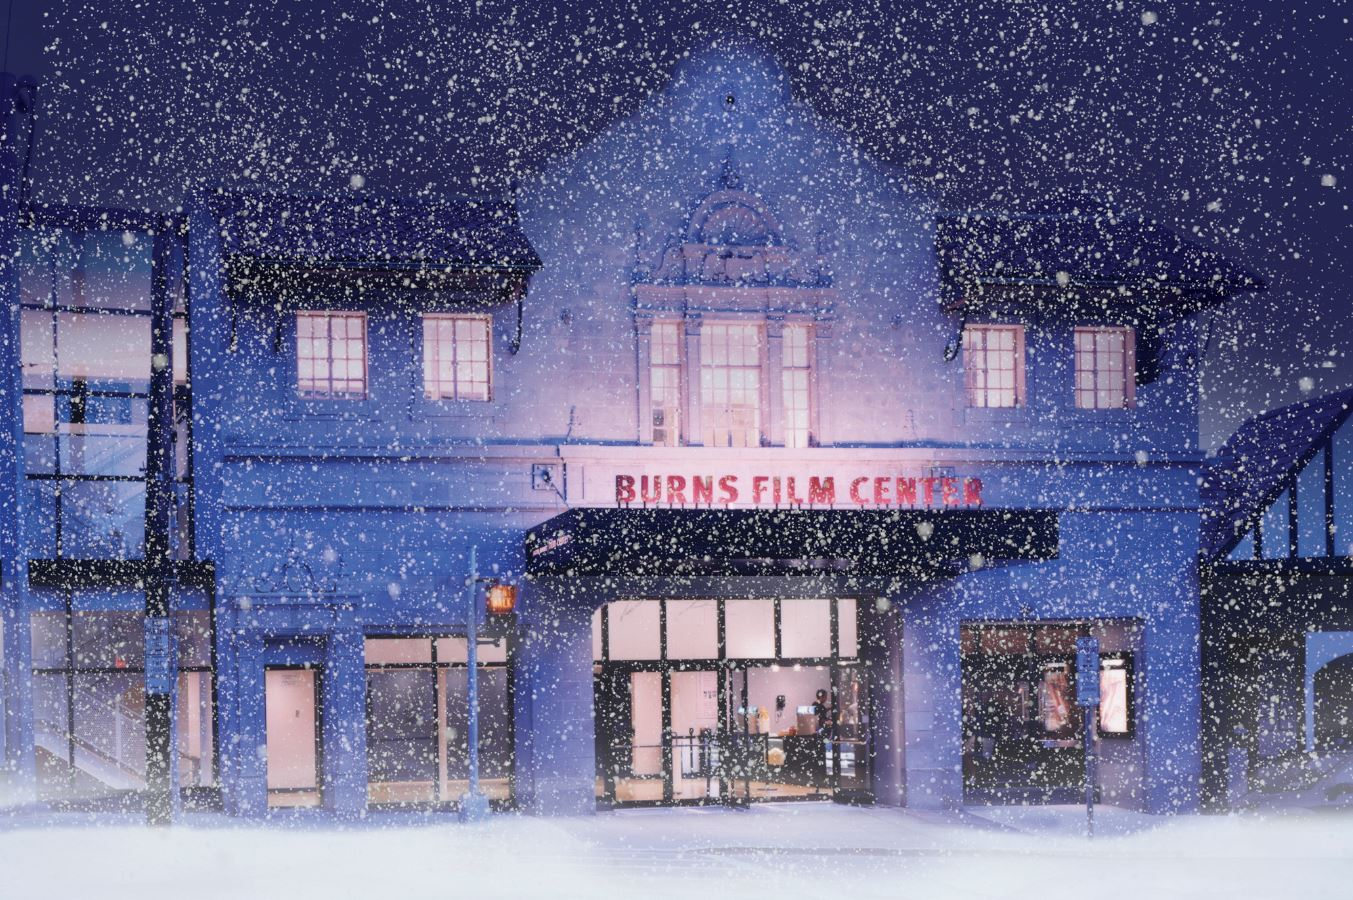 Stay Warm at the Jacob Burns Film Center This Holiday Season with Films for All to Enjoy!